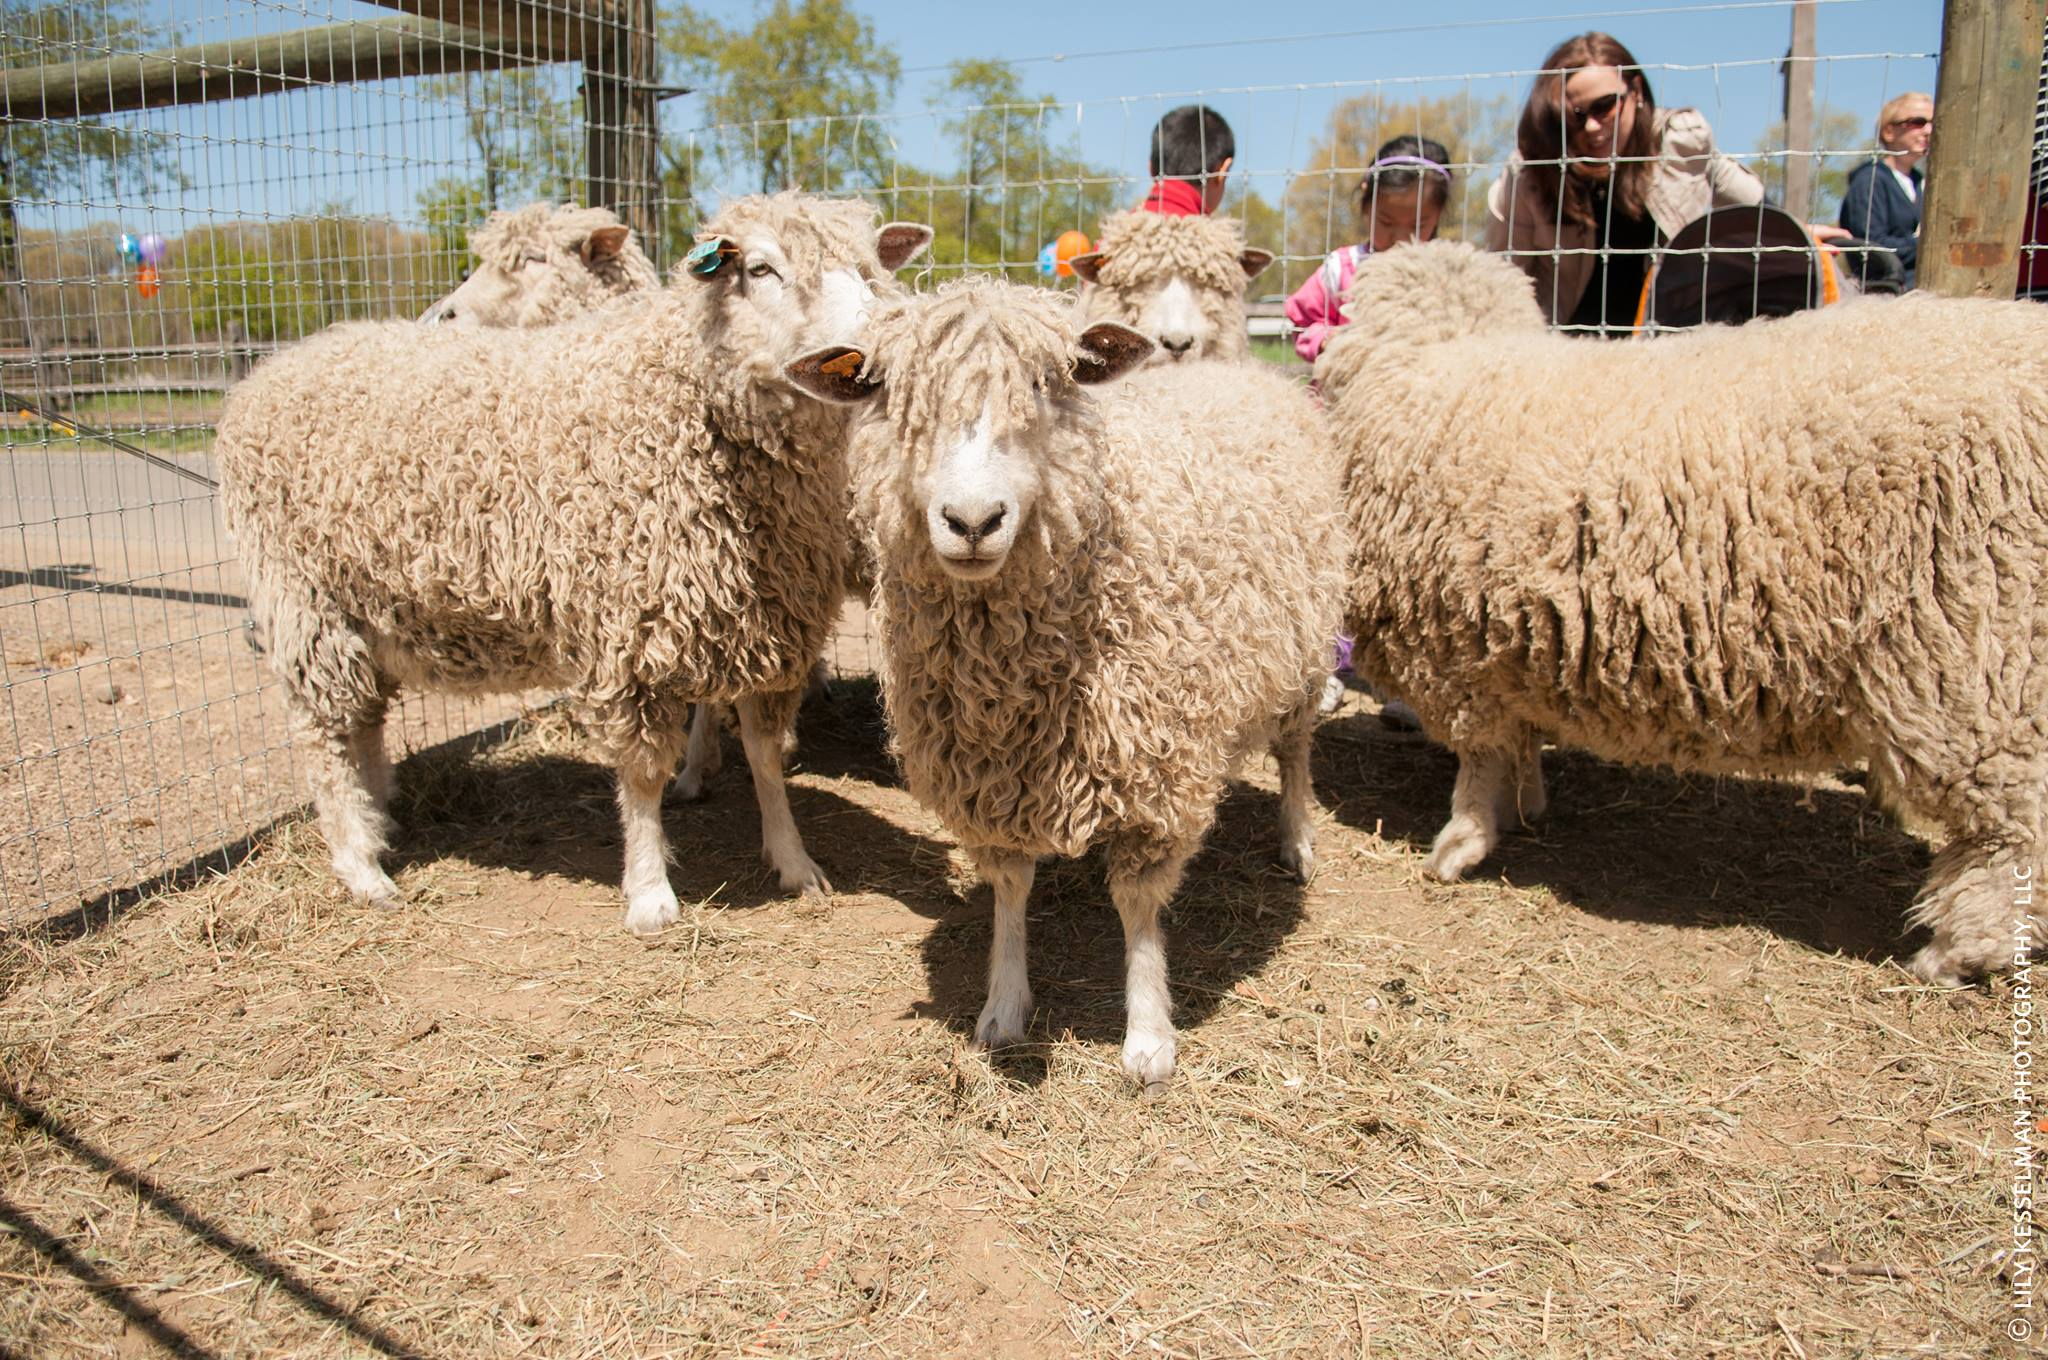 The Sheep Shearing Festival returns to Queens County Farm Museum on Saturday. Photo courtesy of QEDC.